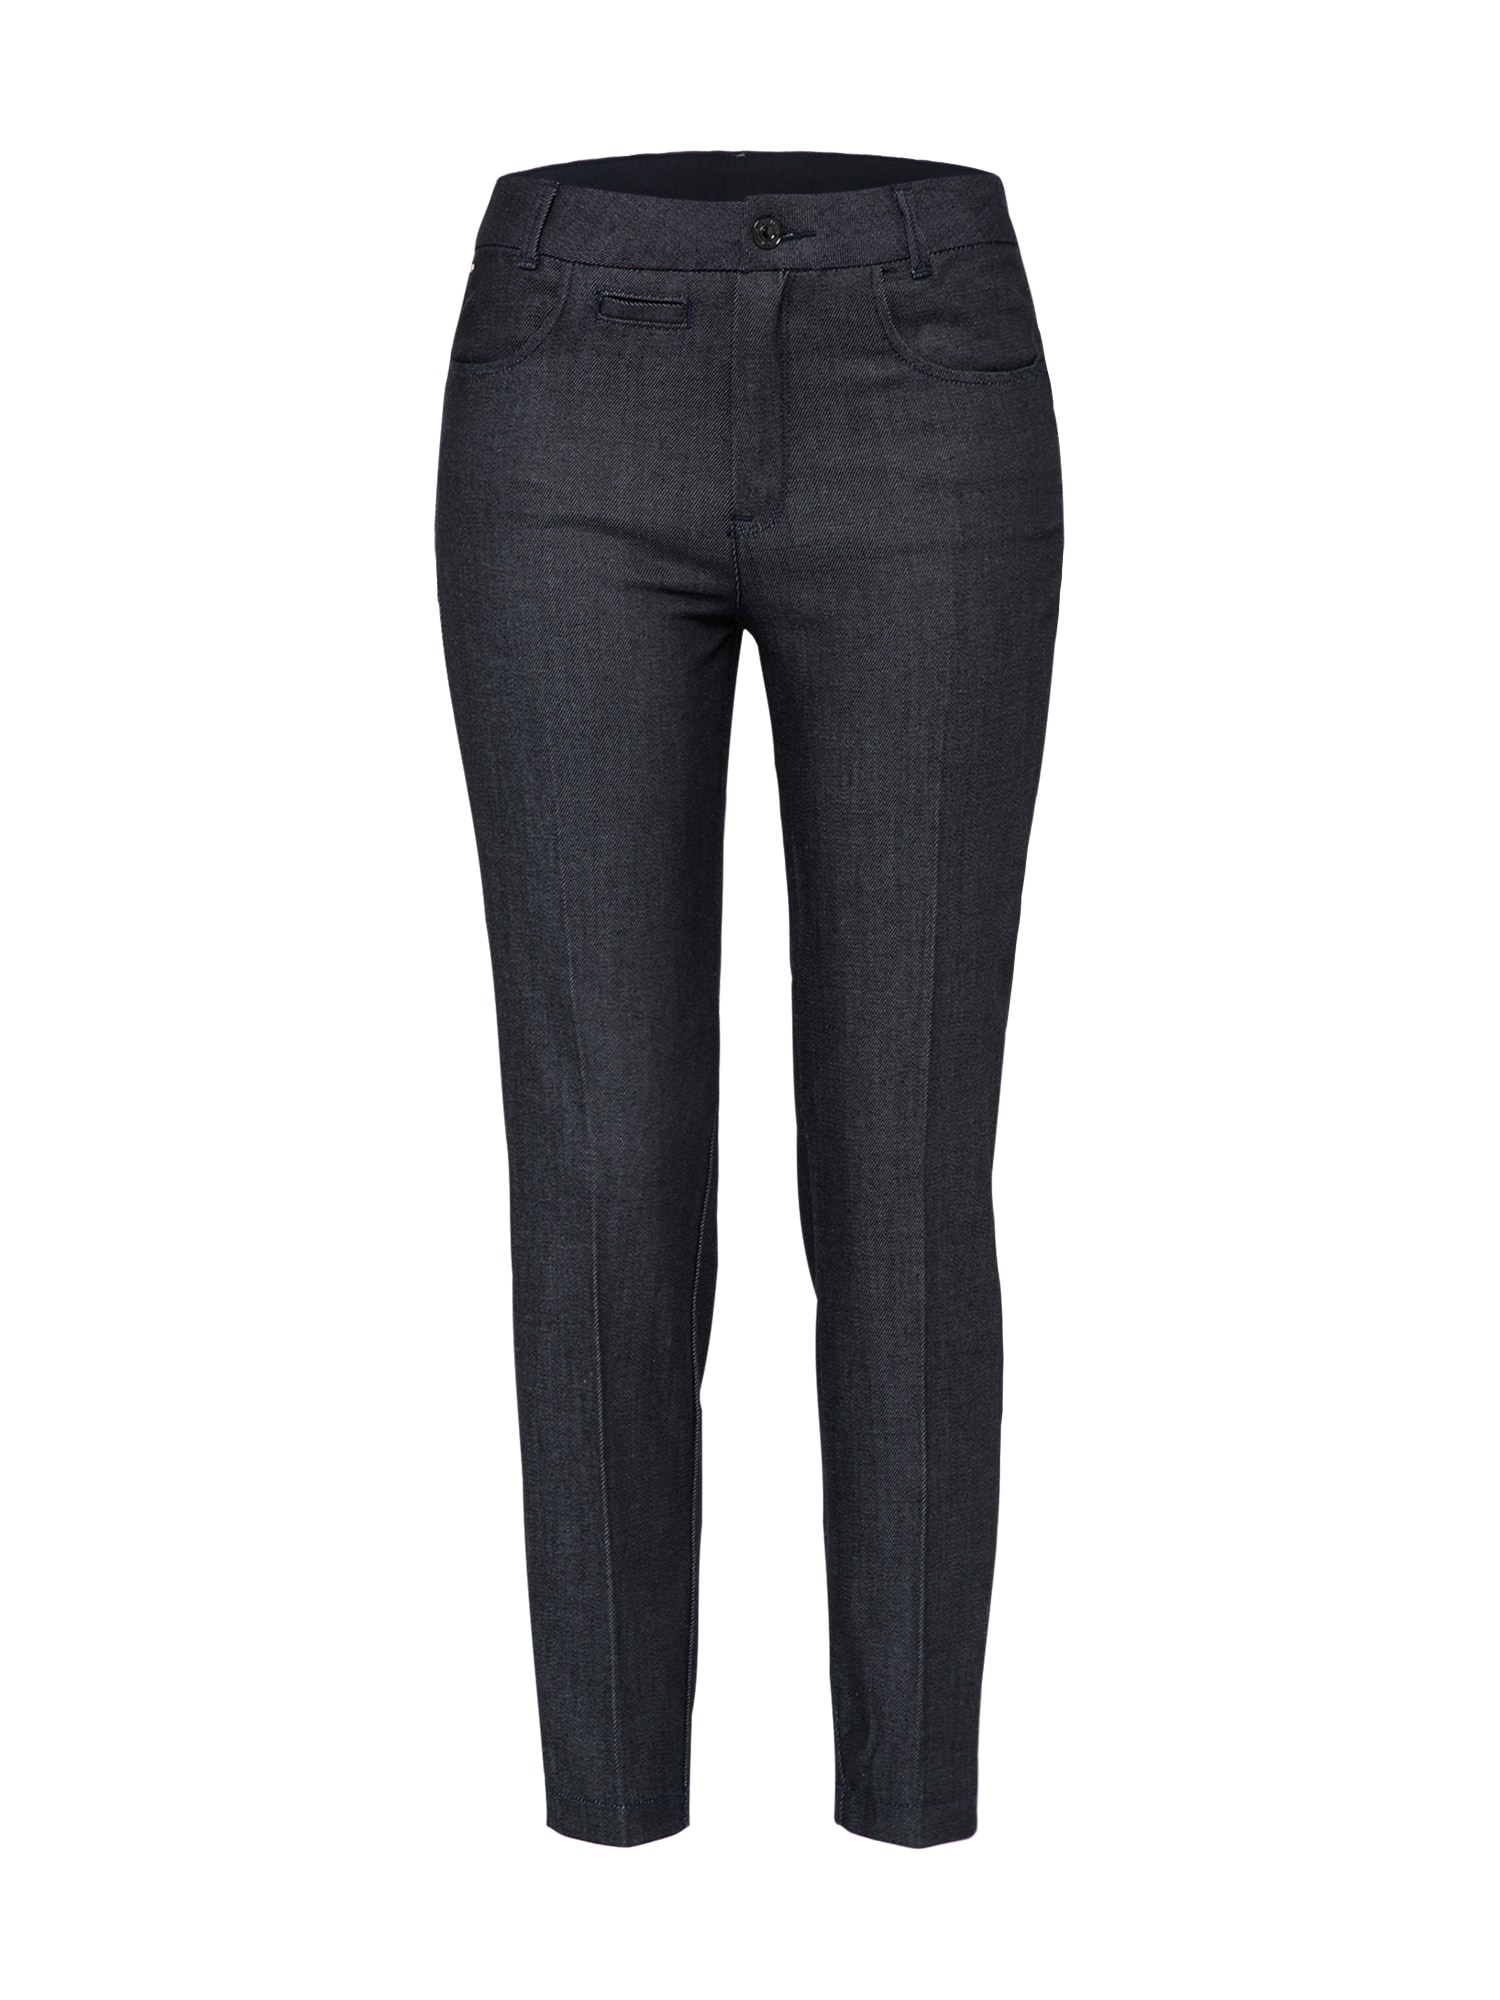 G-STAR RAW Dames Chino D-staq zwart